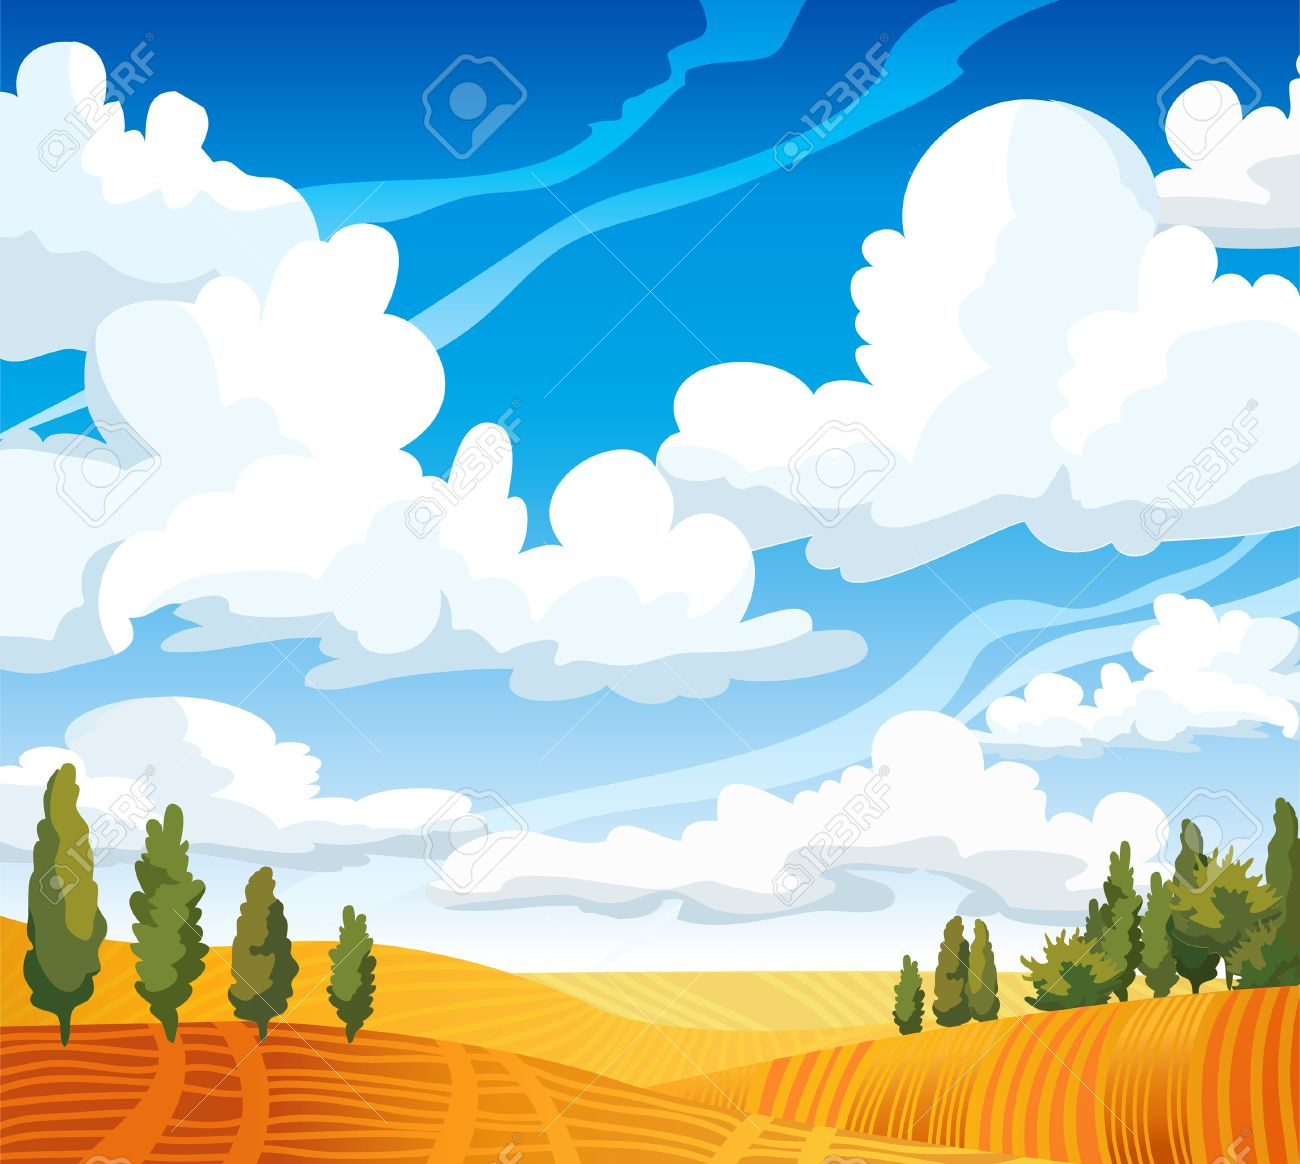 Cloudy day clipart 20 free Cliparts | Download images on ...